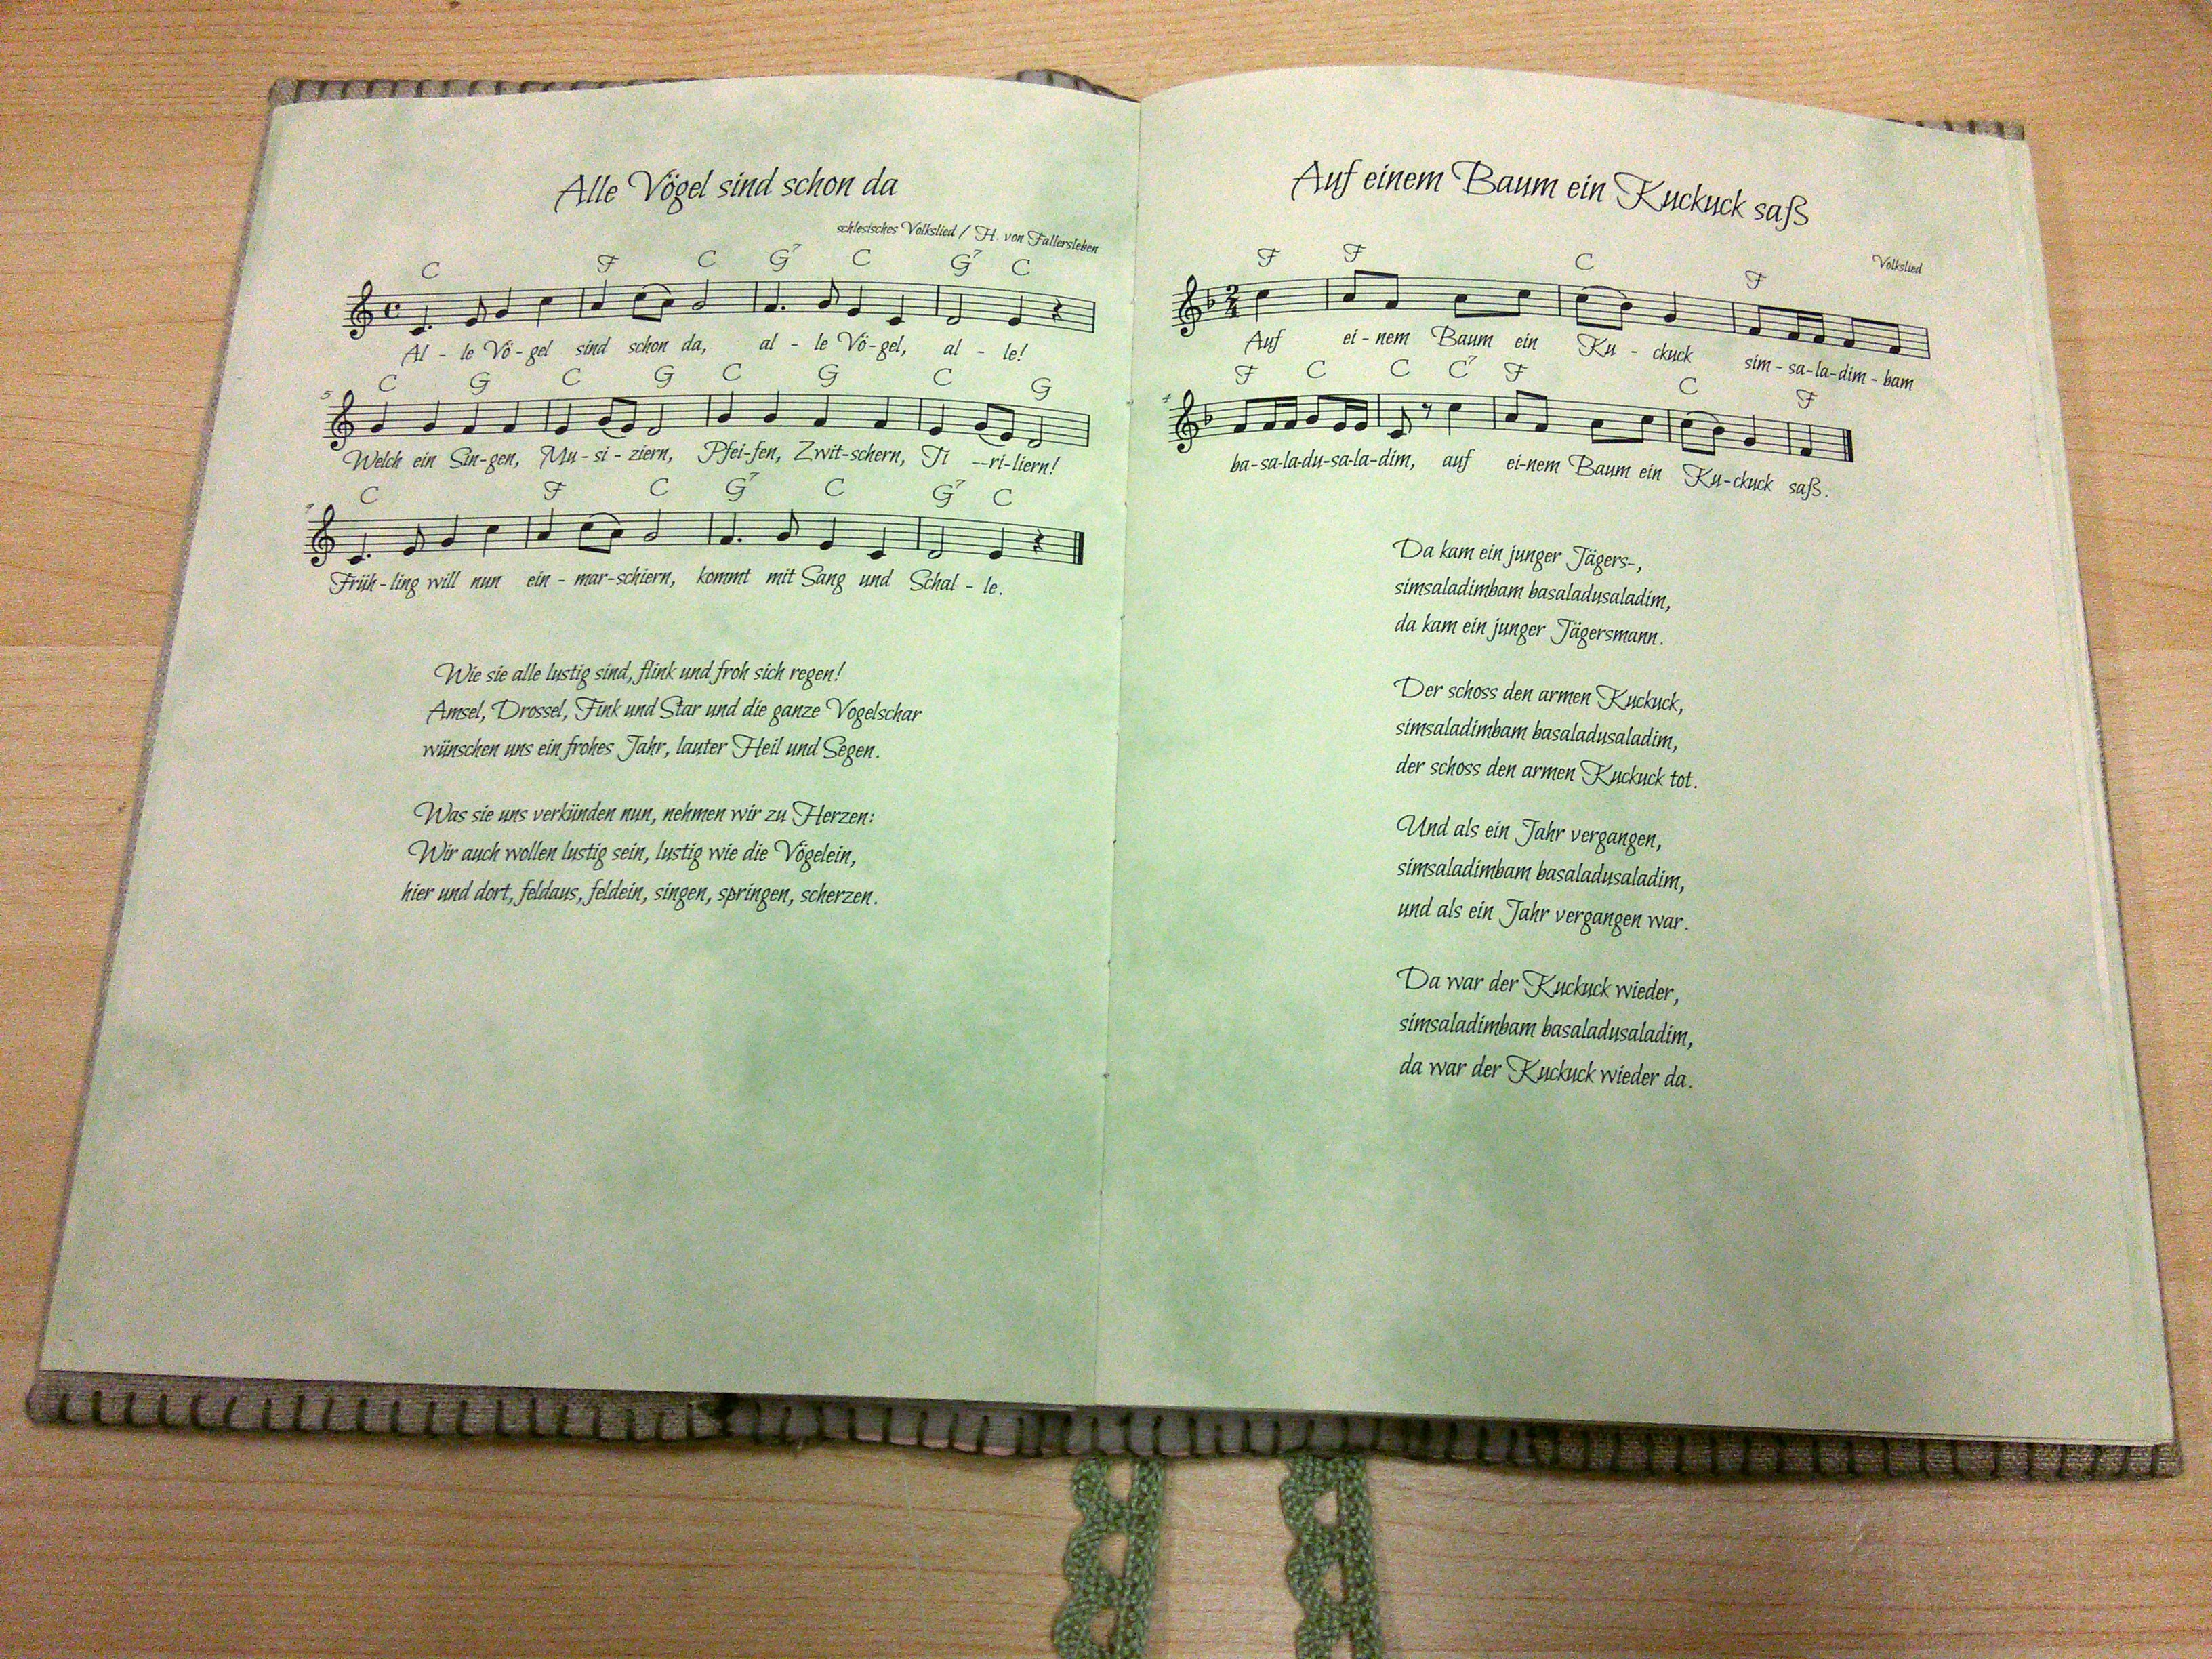 A photo of my songbook, open to show some pages with songs on them.